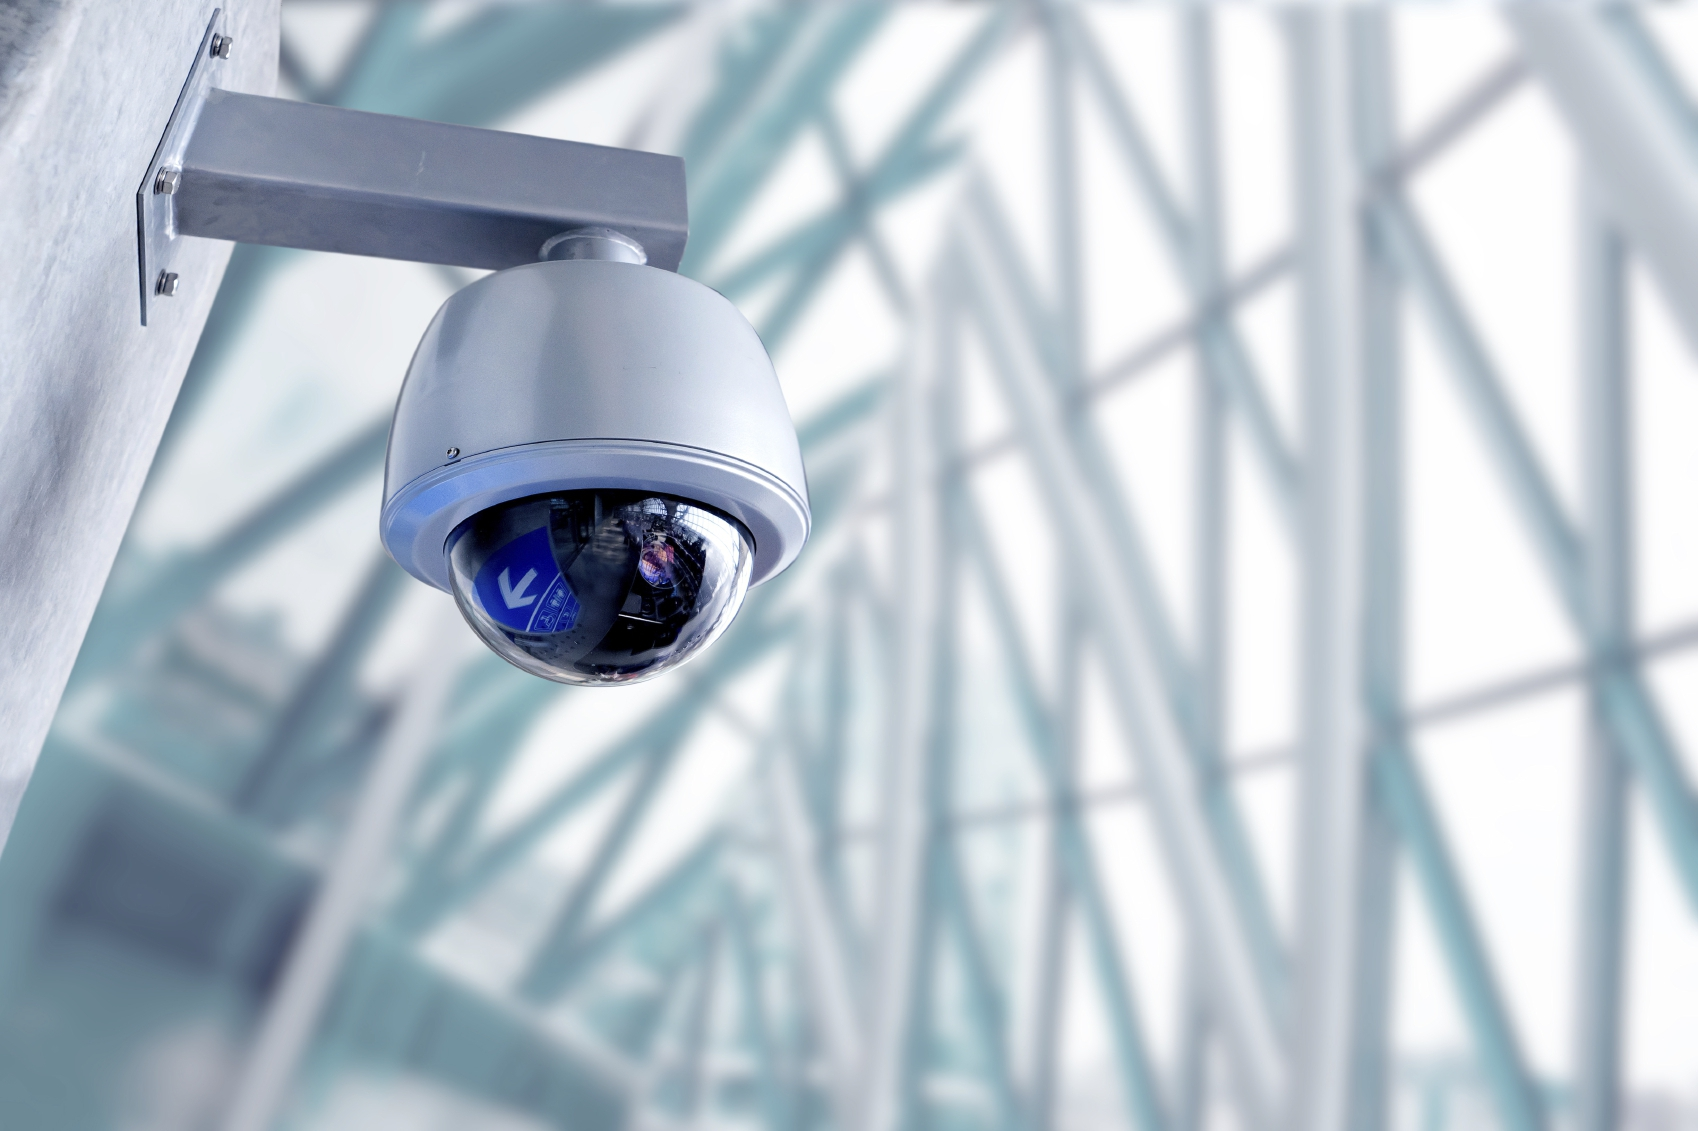 cctv camera iStock_000059391240_Medium